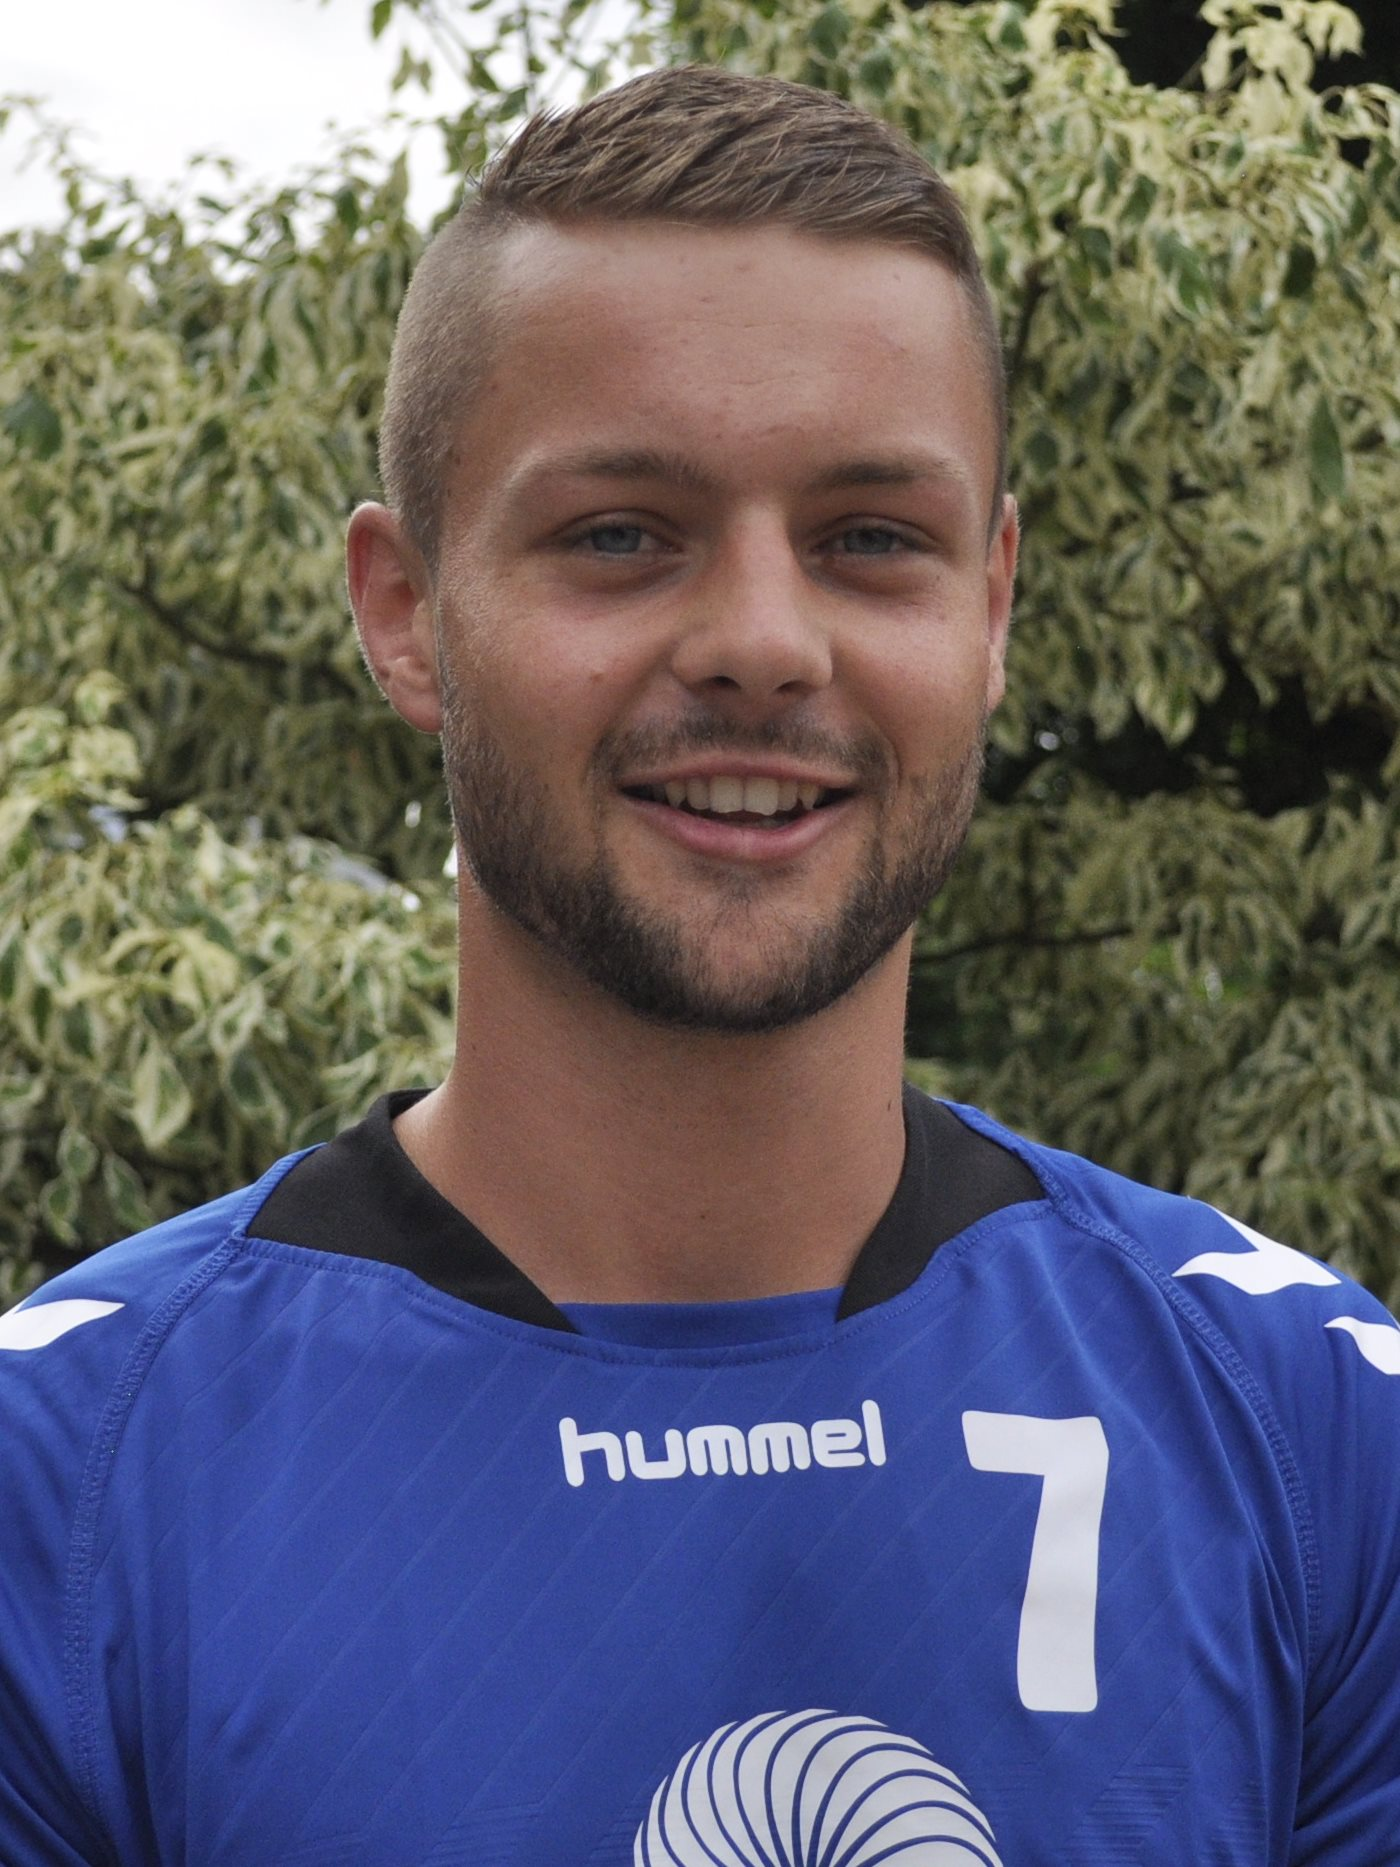 HSG Hochheim/Wicker Herren 1 2015/2016 Dominik Petry